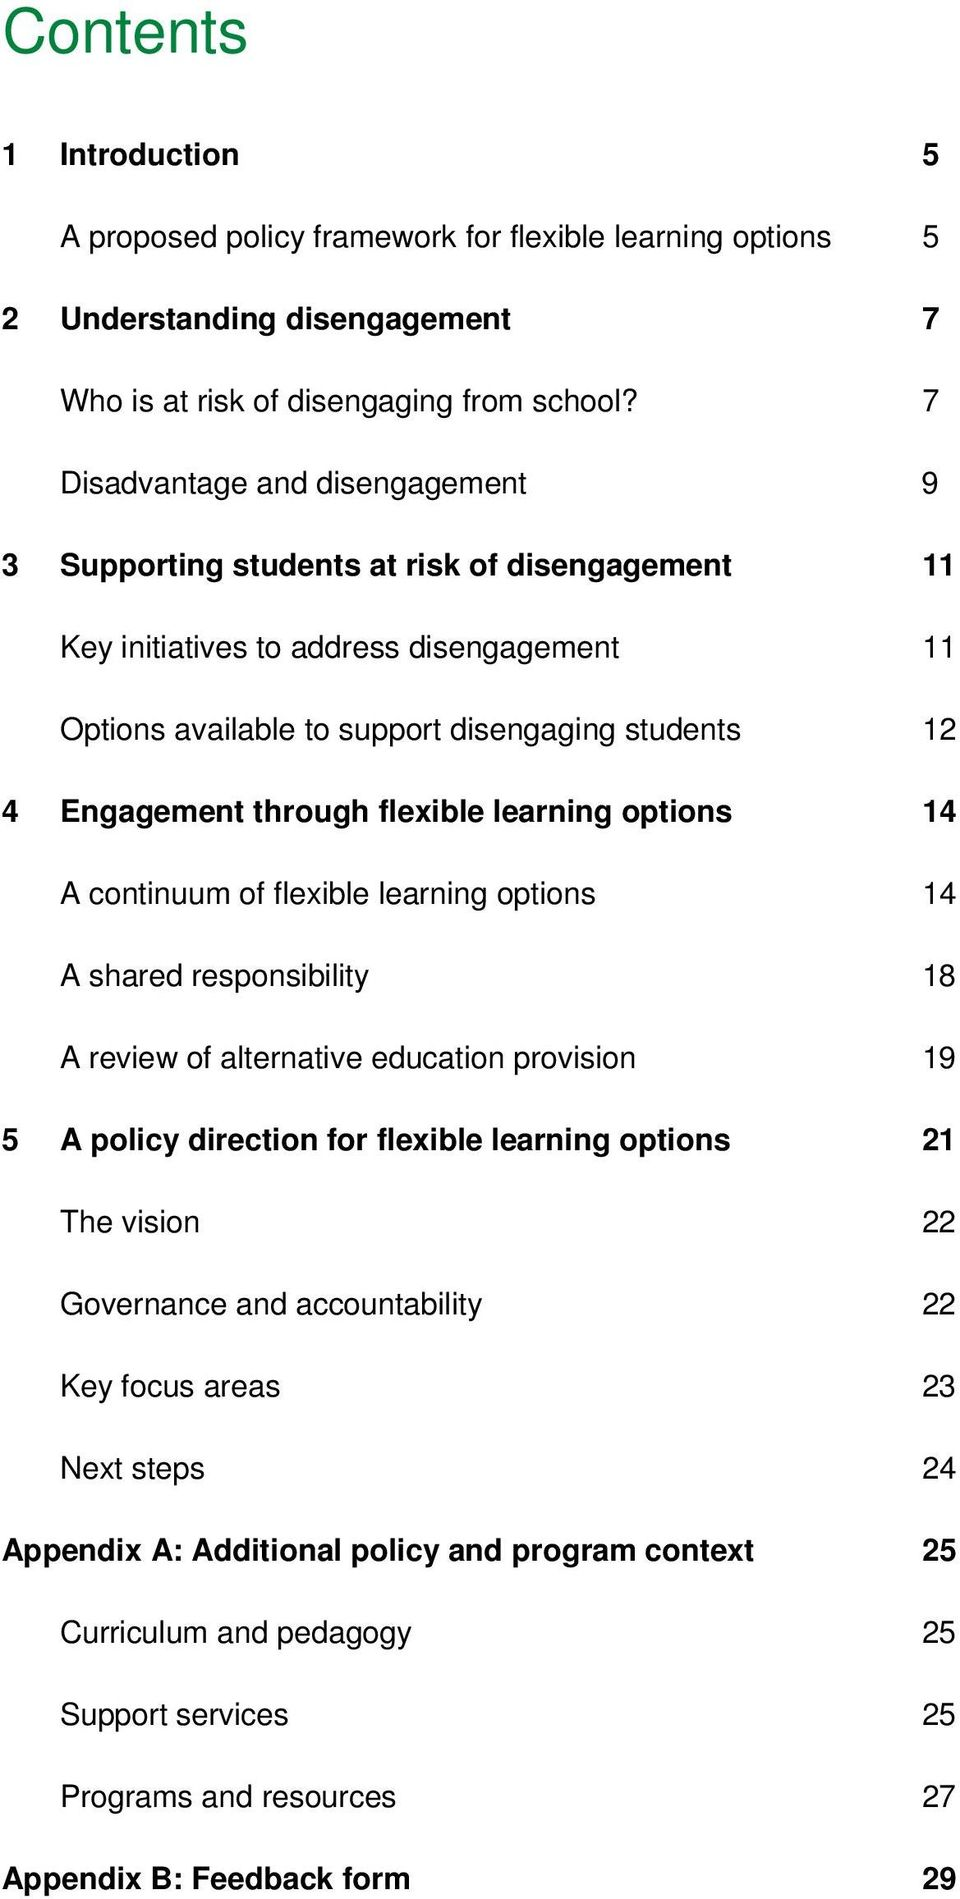 through flexible learning options 14 A continuum of flexible learning options 14 A shared responsibility 18 A review of alternative education provision 19 5 A policy direction for flexible learning